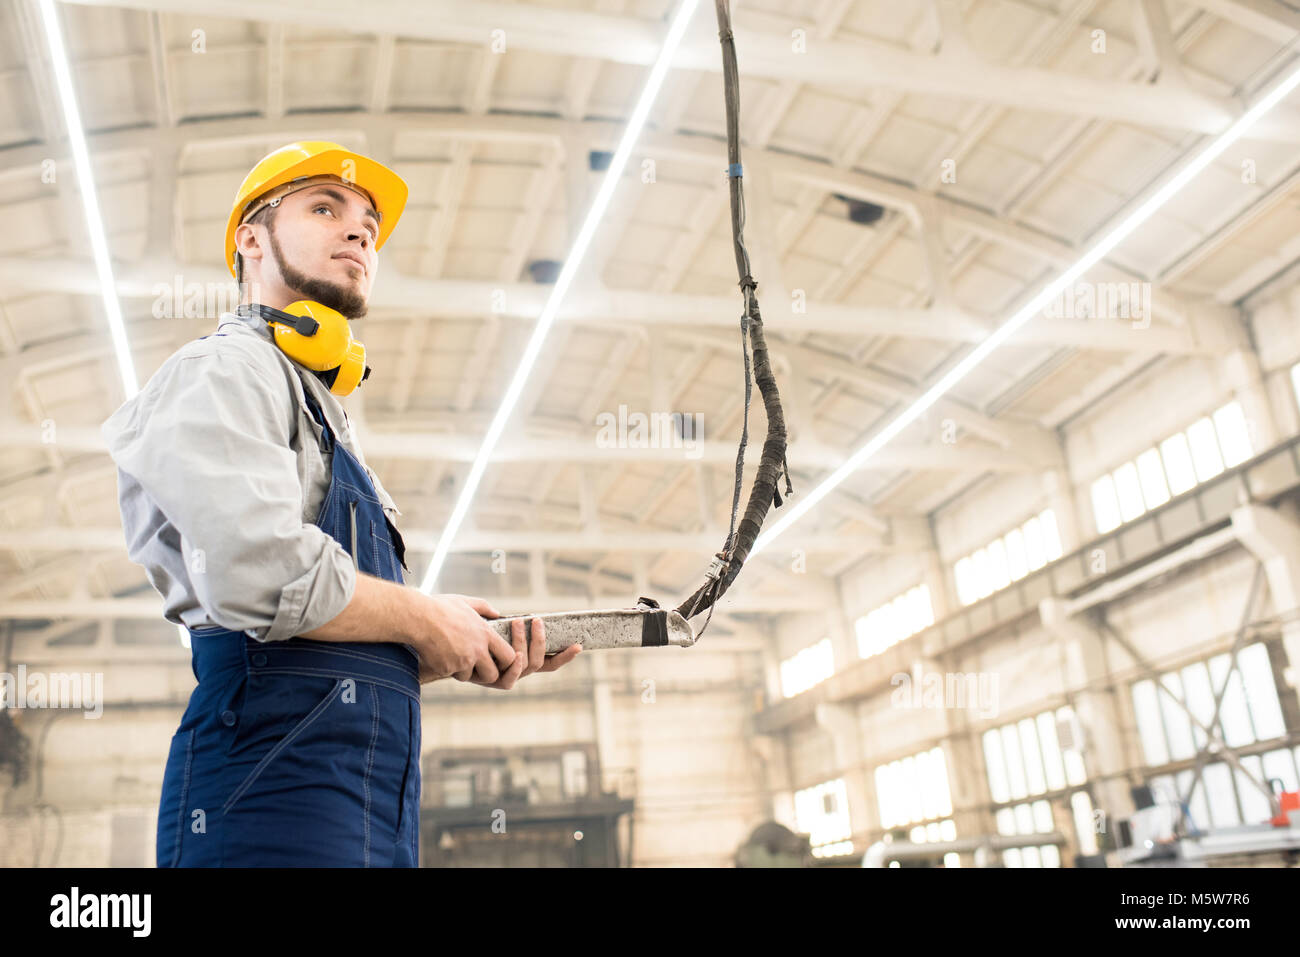 Low angle view of bearded machine operator wearing overall and protective helmet wrapped up in work while standing - Stock Image